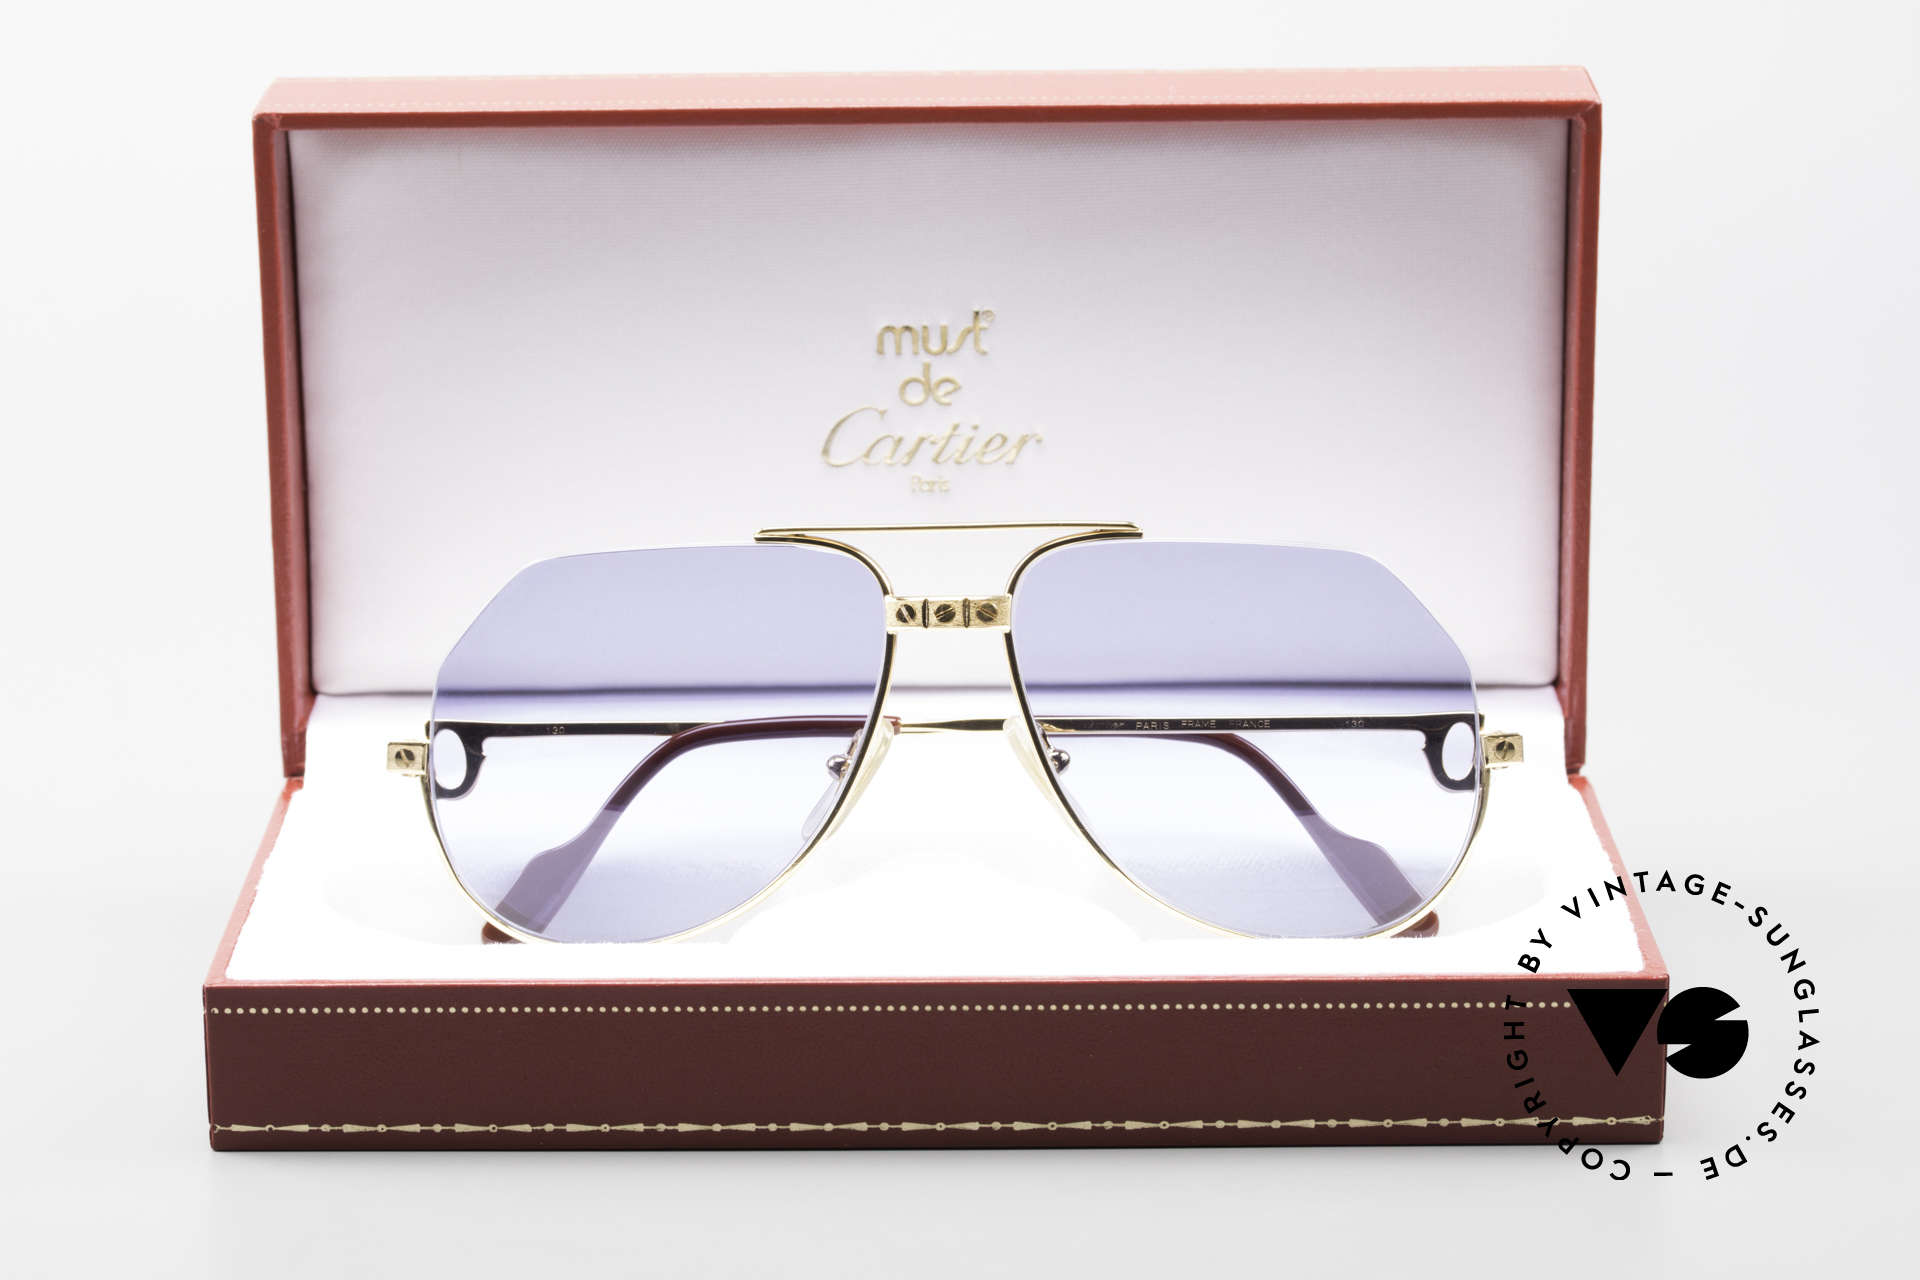 Cartier Vendome Santos - S One Of A Kind Nylor And Gold, Size: medium, Made for Men